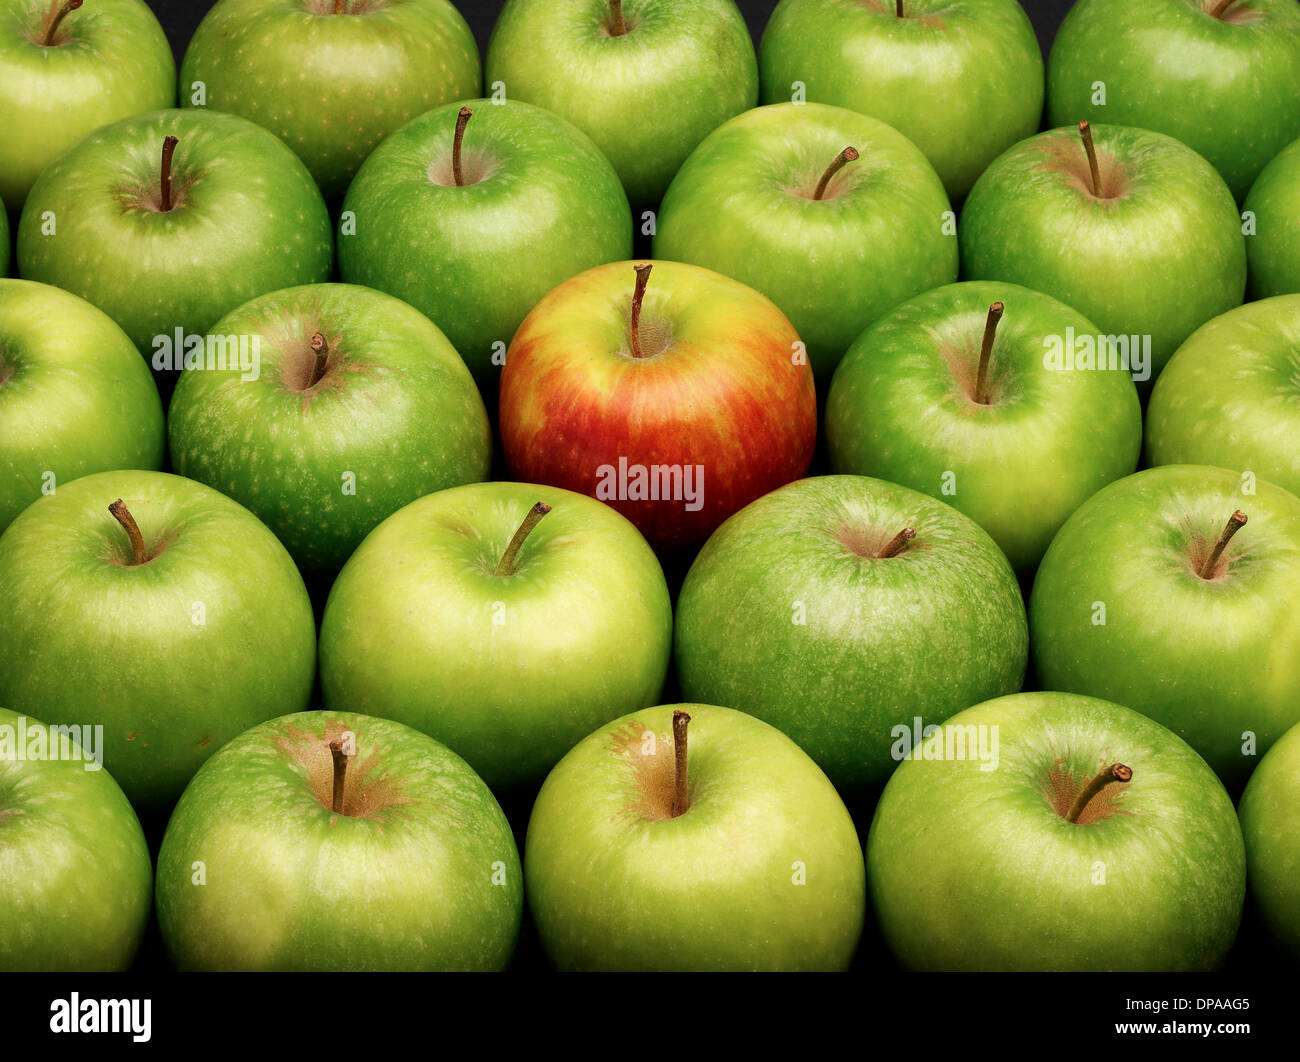 green and red apples. group of green apples with one red apple and